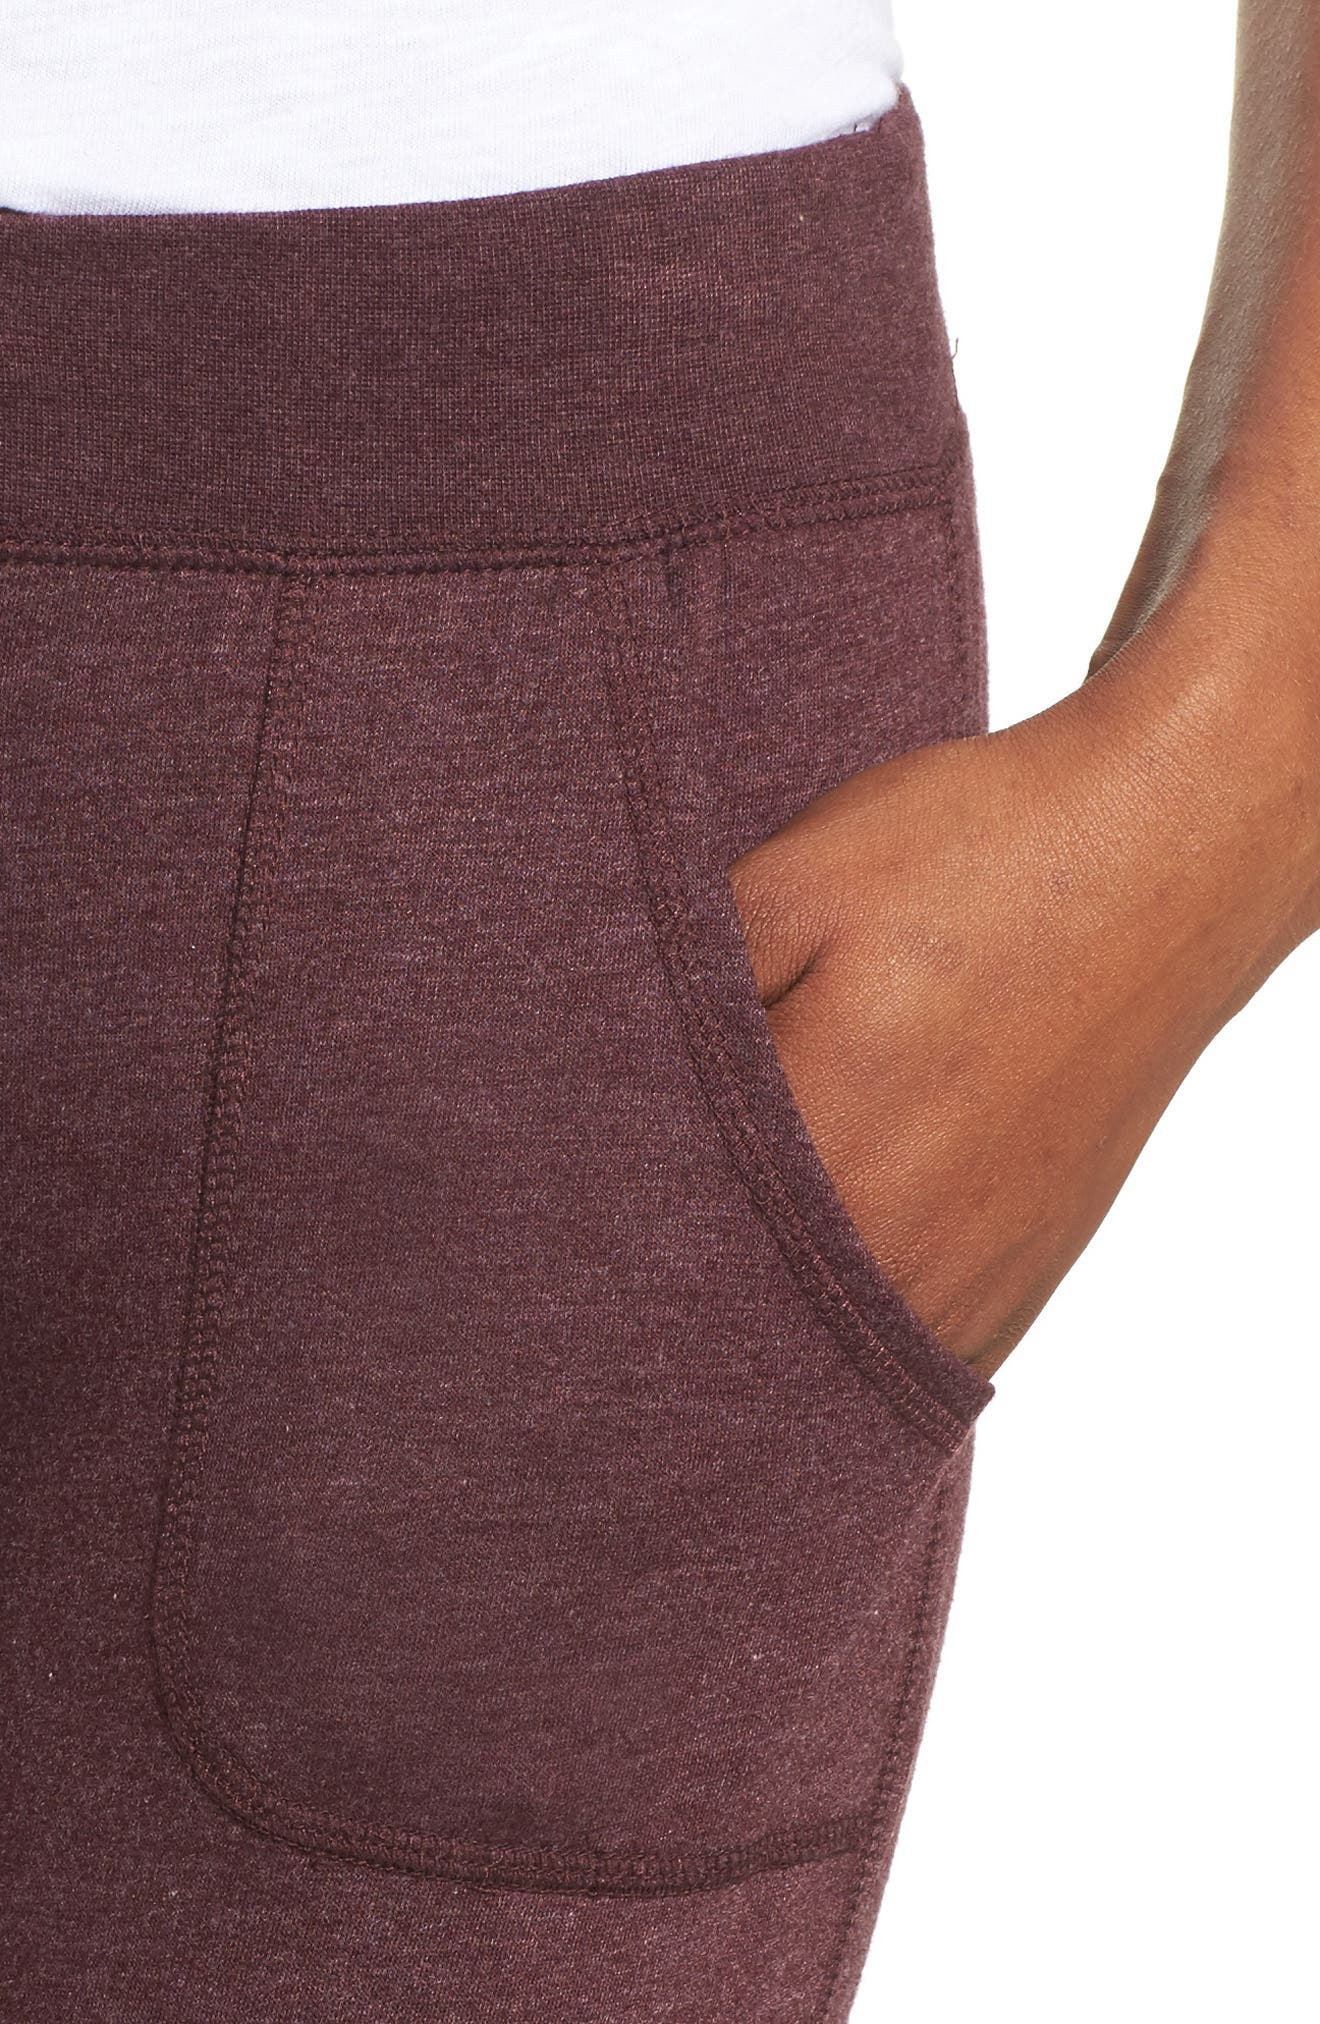 All About It Lounge Pants,                             Alternate thumbnail 25, color,